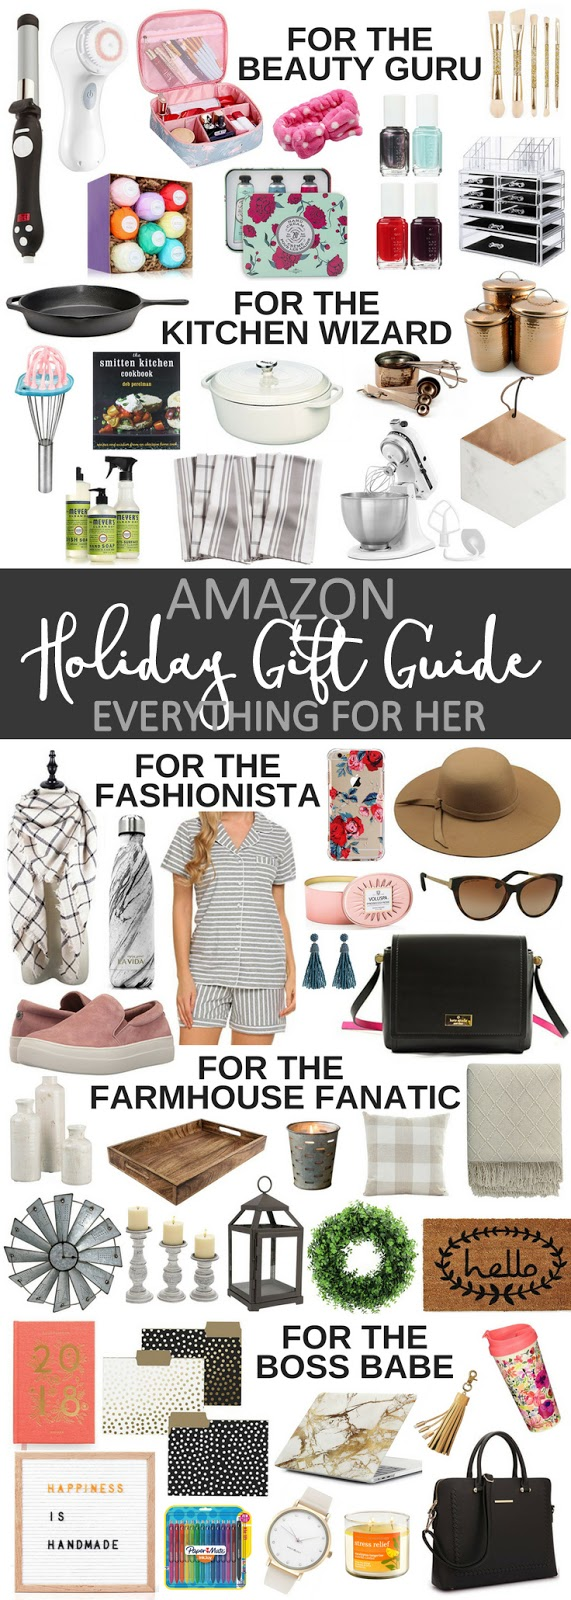 Amazon Holiday Gift Guide: For Her - Blooming Boldly